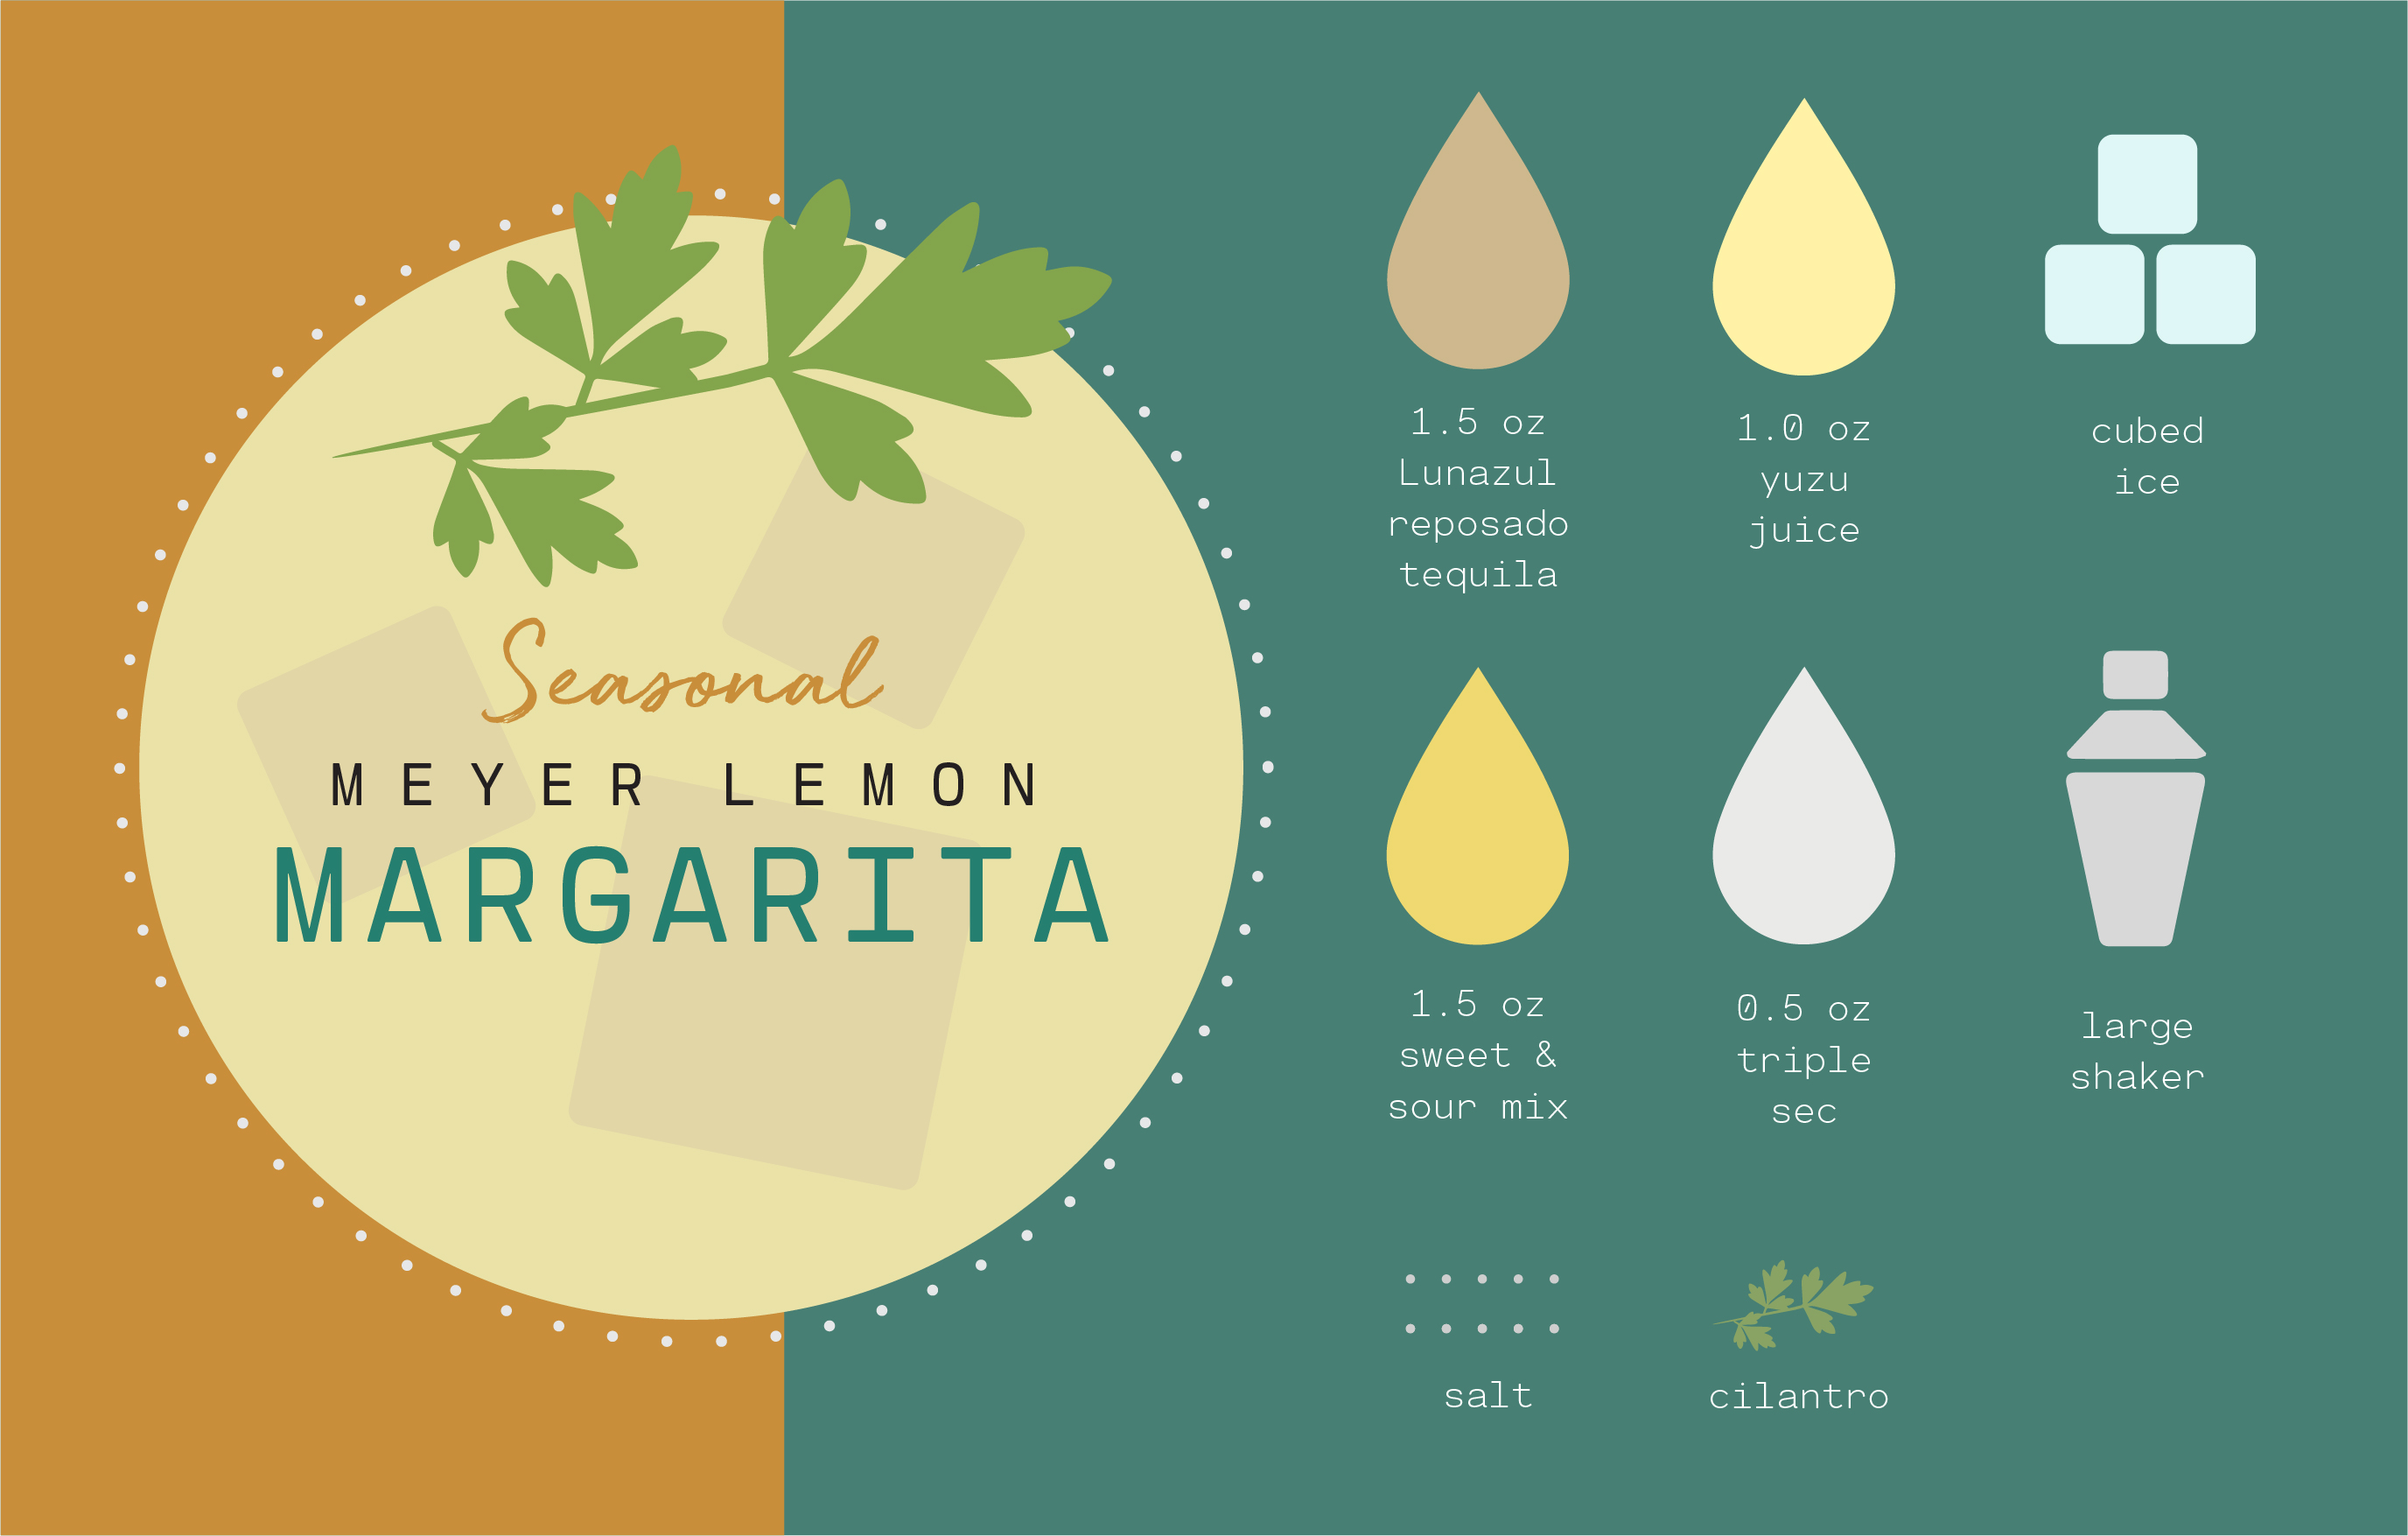 Meyer Lemon Margarita recipe image